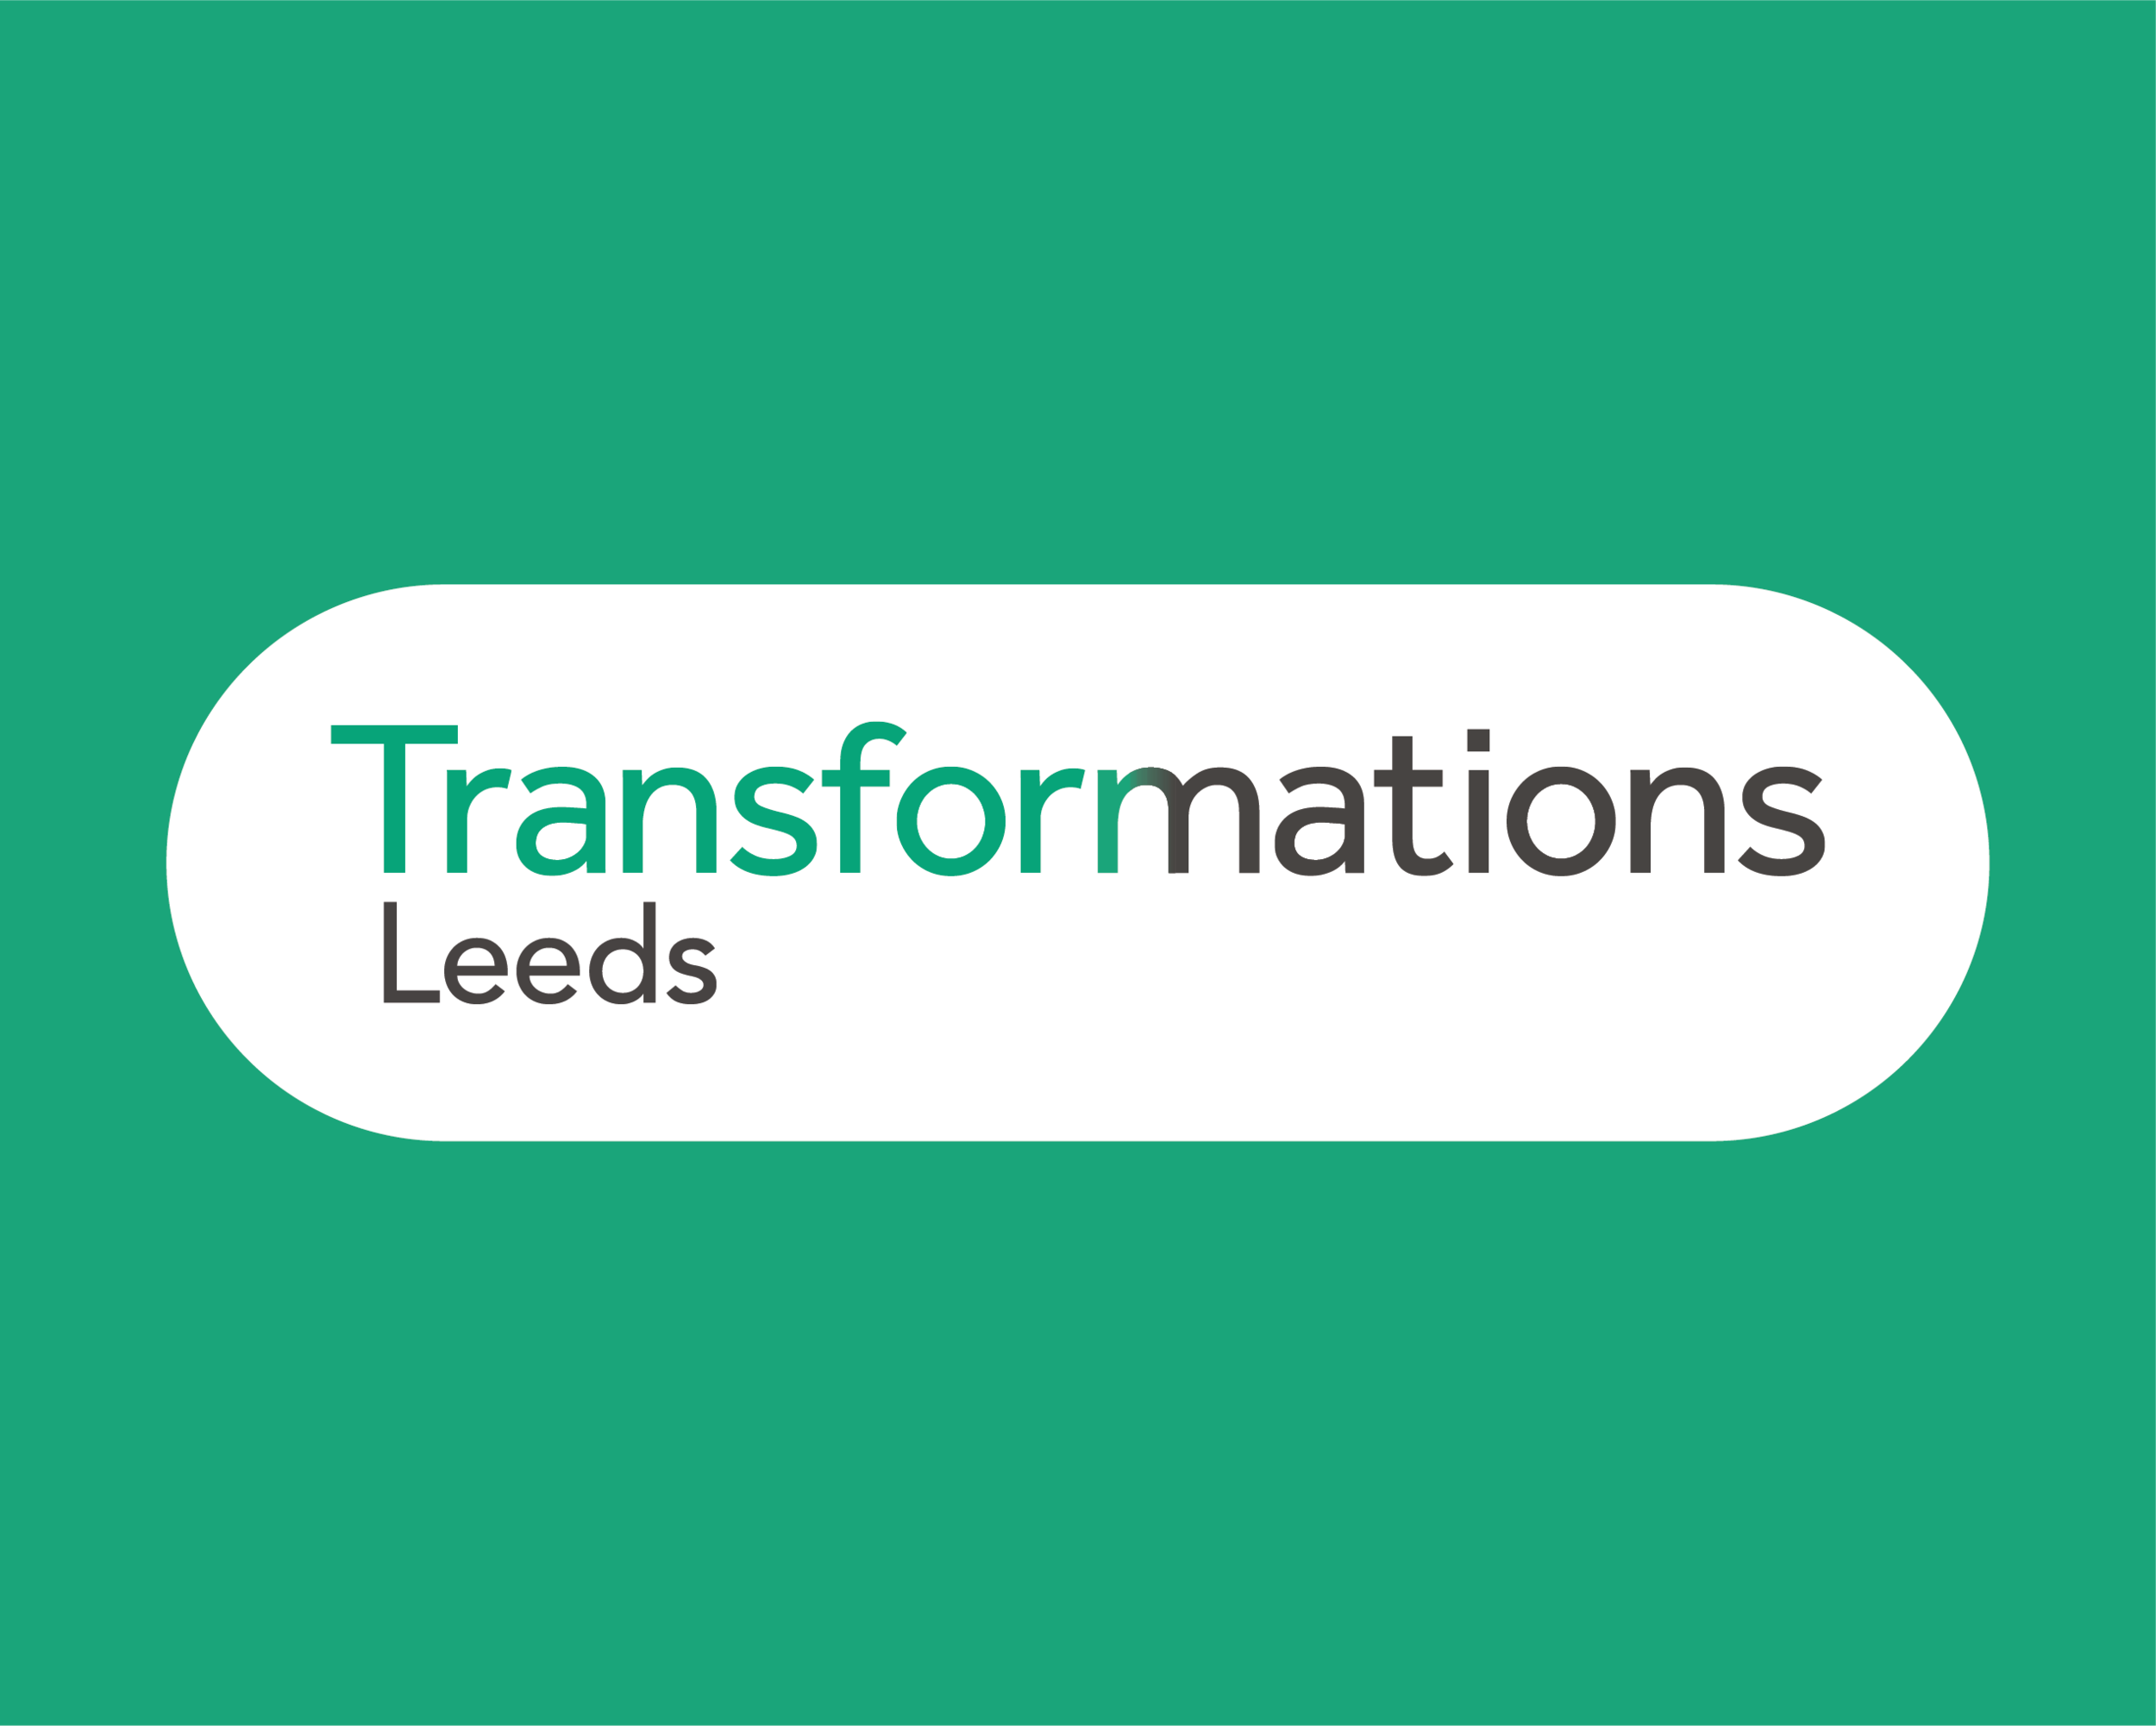 ABOUT - Find out about more about our organization and what we do week in and week out at Transformations Leeds!